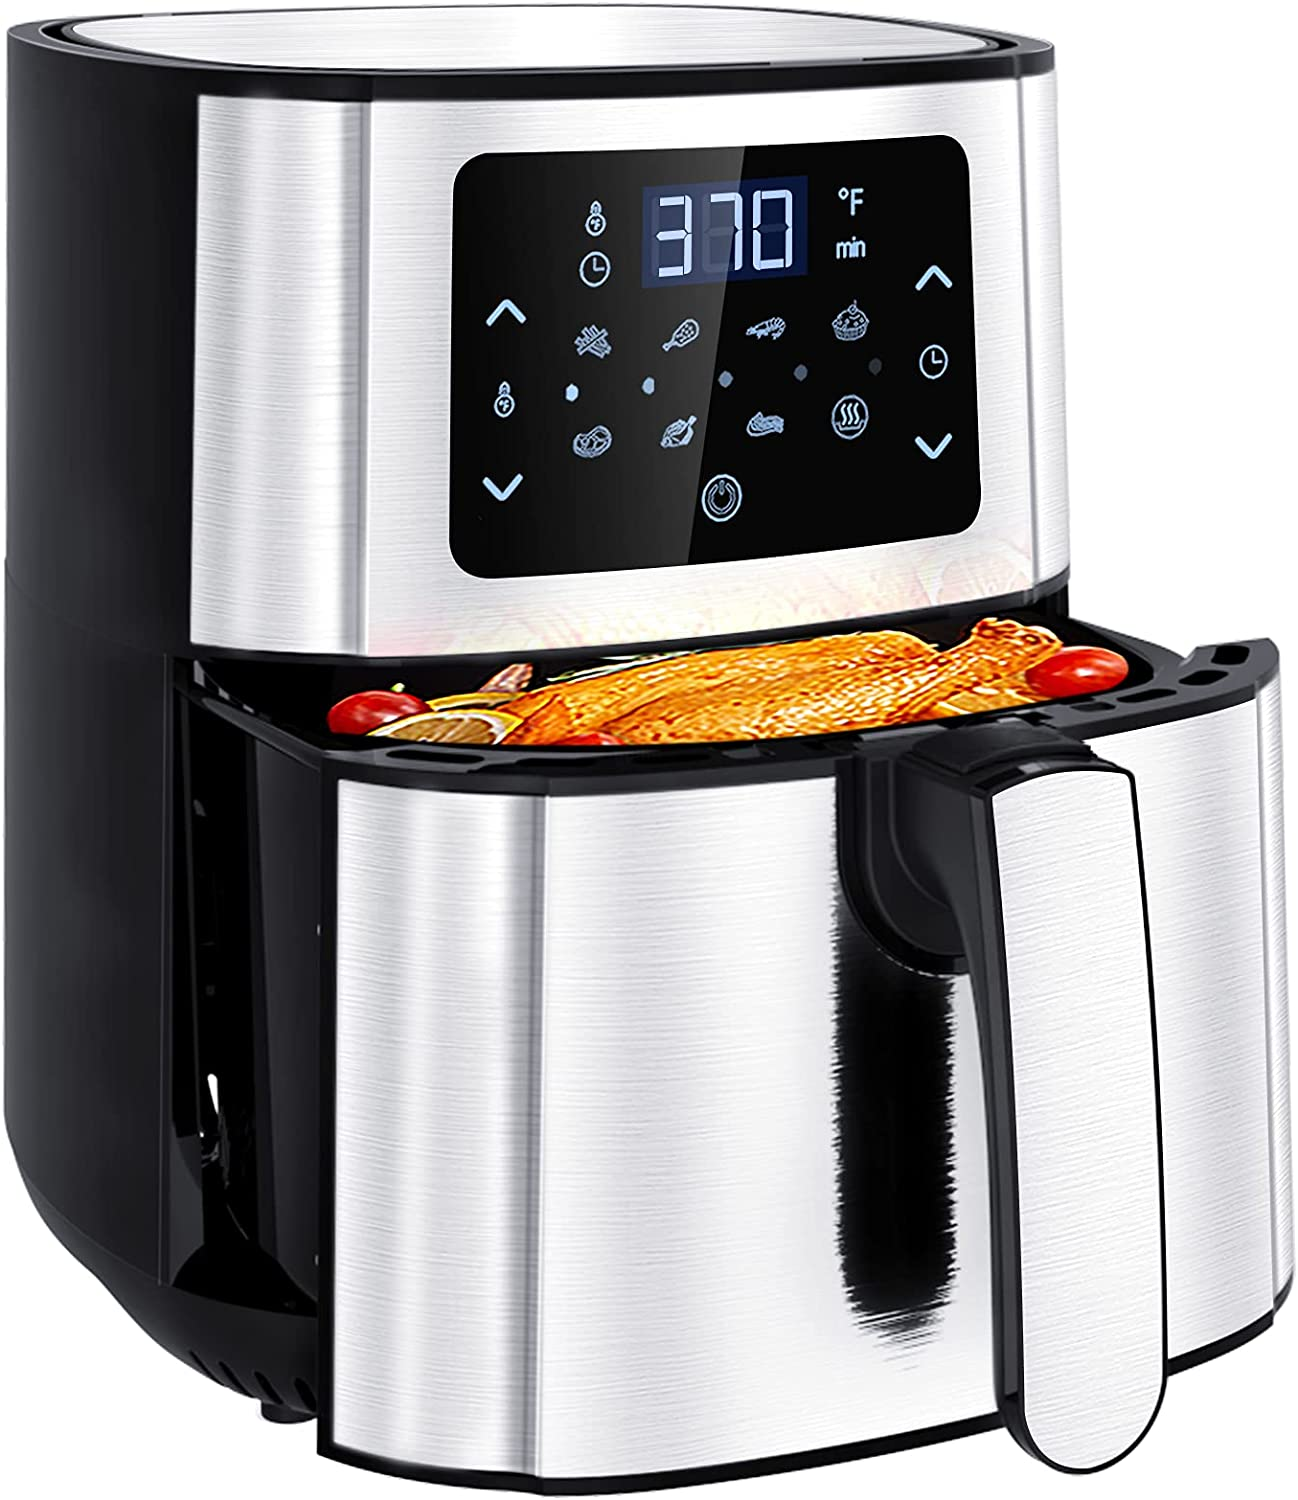 Nebulastone Air Fryer, 6 Quart Air Fryer Oilless Oven with 72 Recipes, Up to 400℉, 7 Cooking Functions, Temperature and time Control Function, LED Touch Screen, for Families of 3-8 People, Nonstick & Easy Clean, ETL Certified